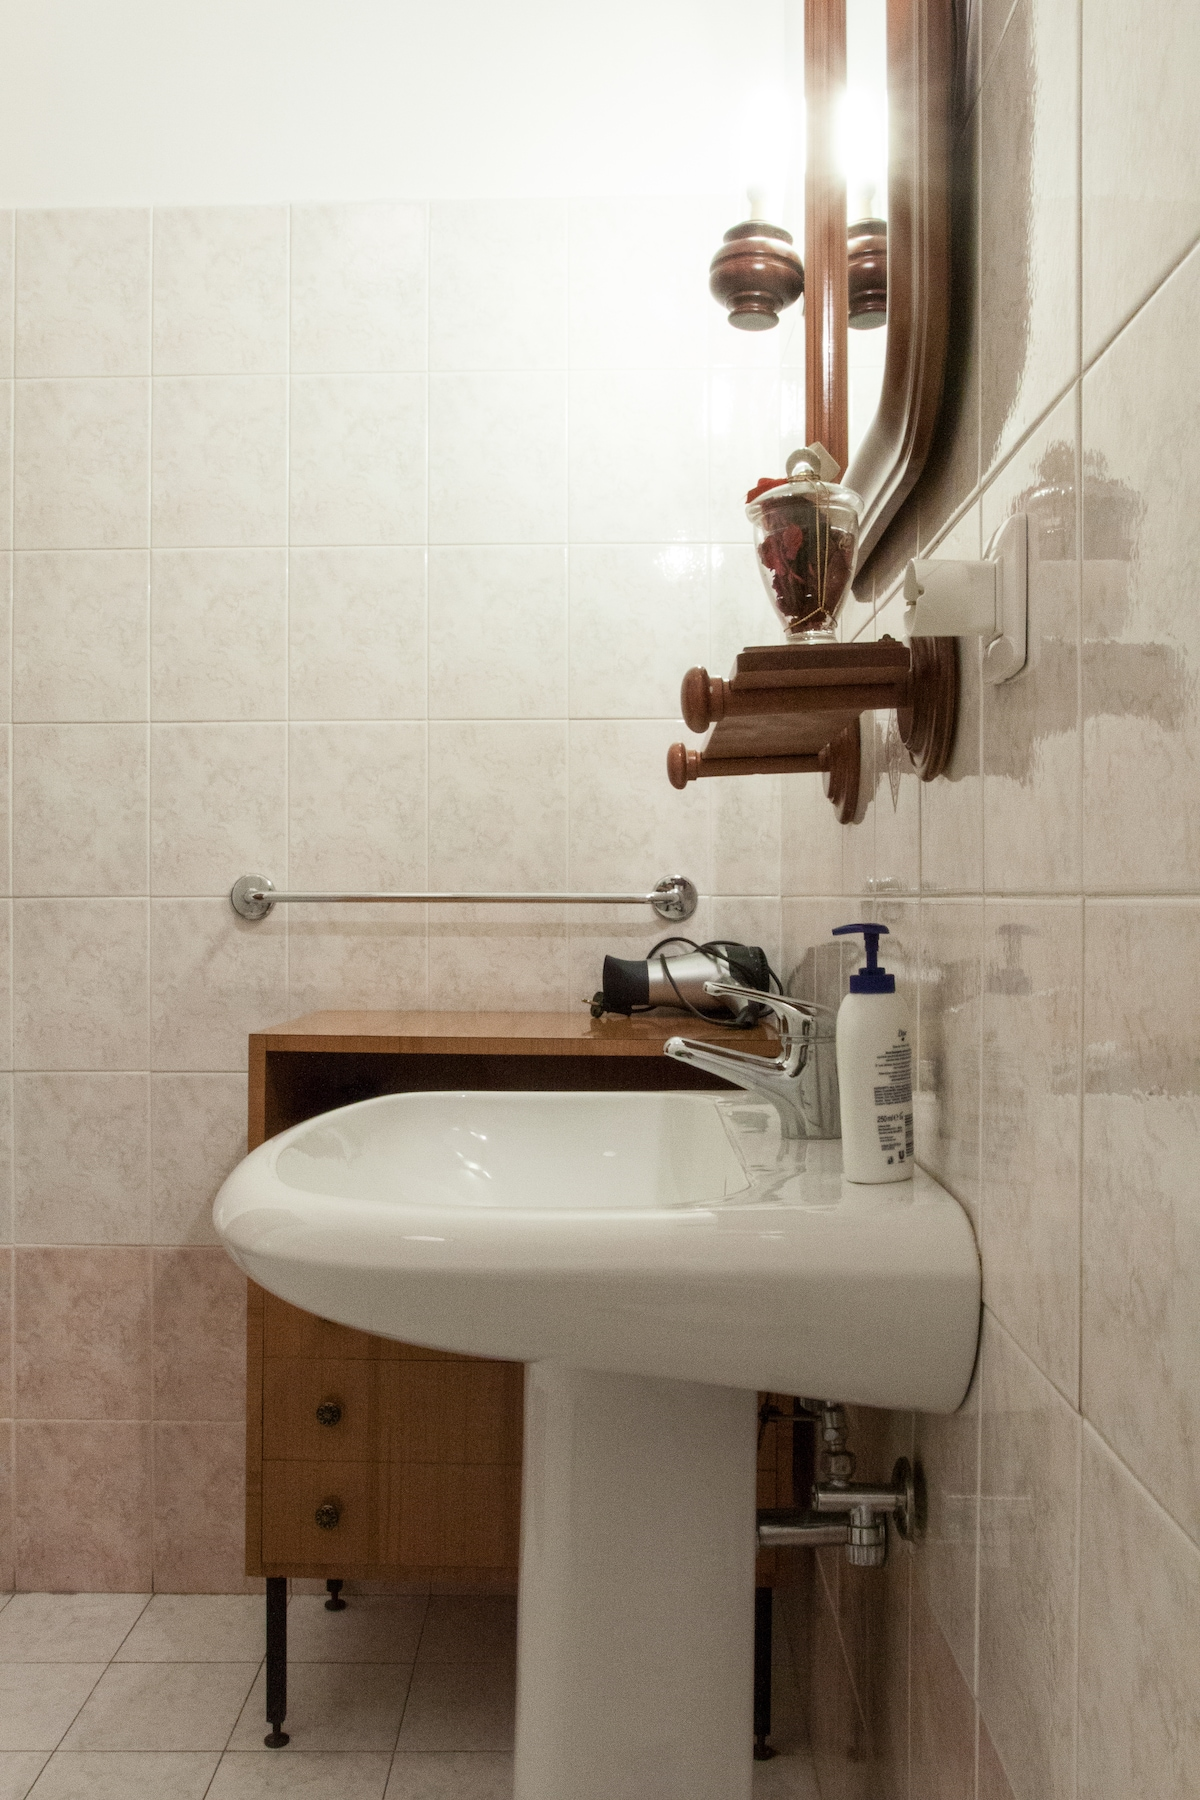 Lovely single room with Guest bath.